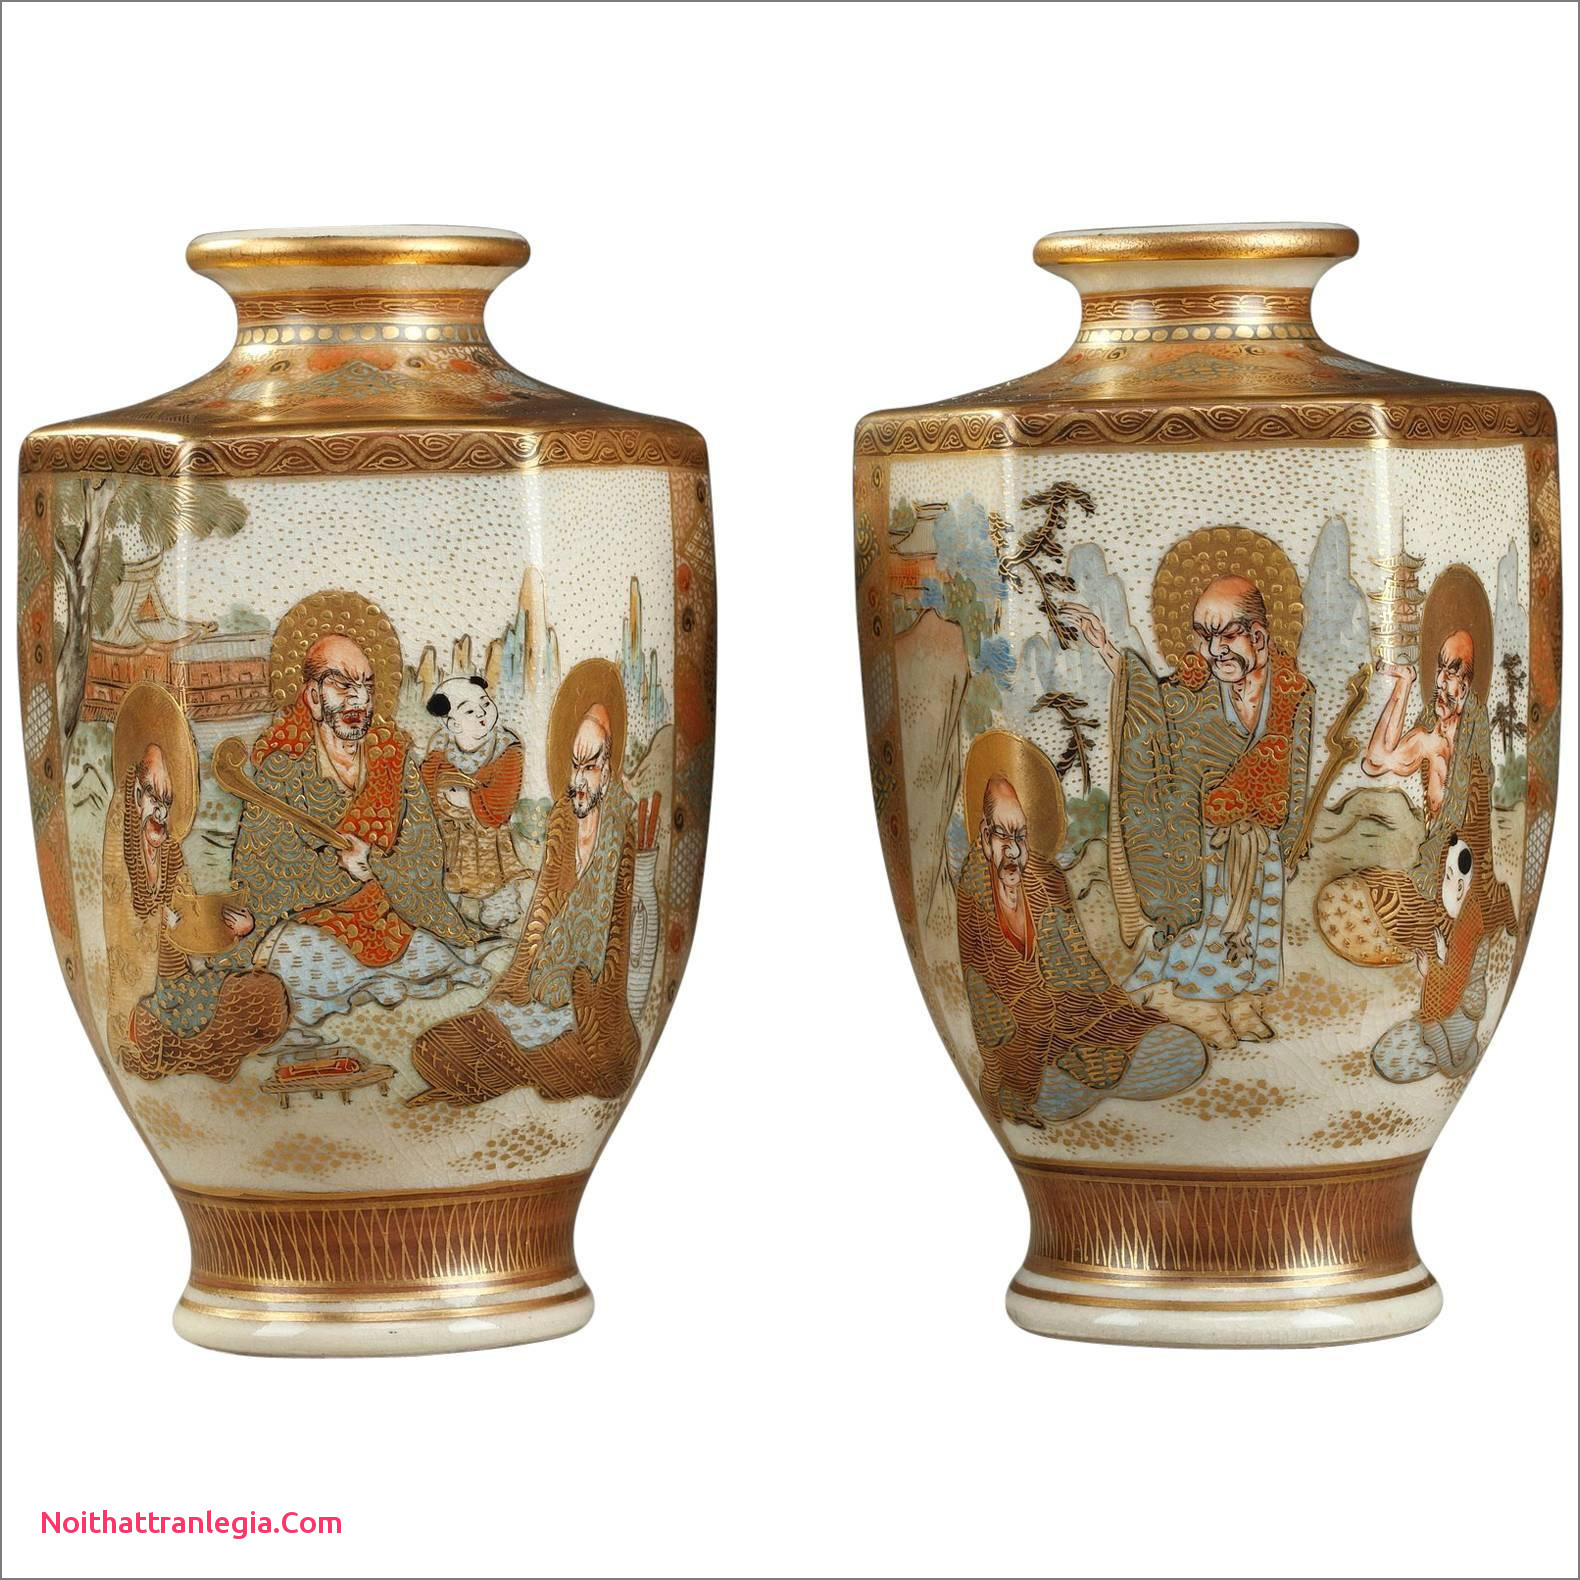 Chinese Cloisonne Vase Value Of 20 Chinese Antique Vase Noithattranlegia Vases Design Throughout Chinese Ginger Jar Table Lamps Elegant Pair 20th Century General Porcelain Trenton Nj Usa Industrial